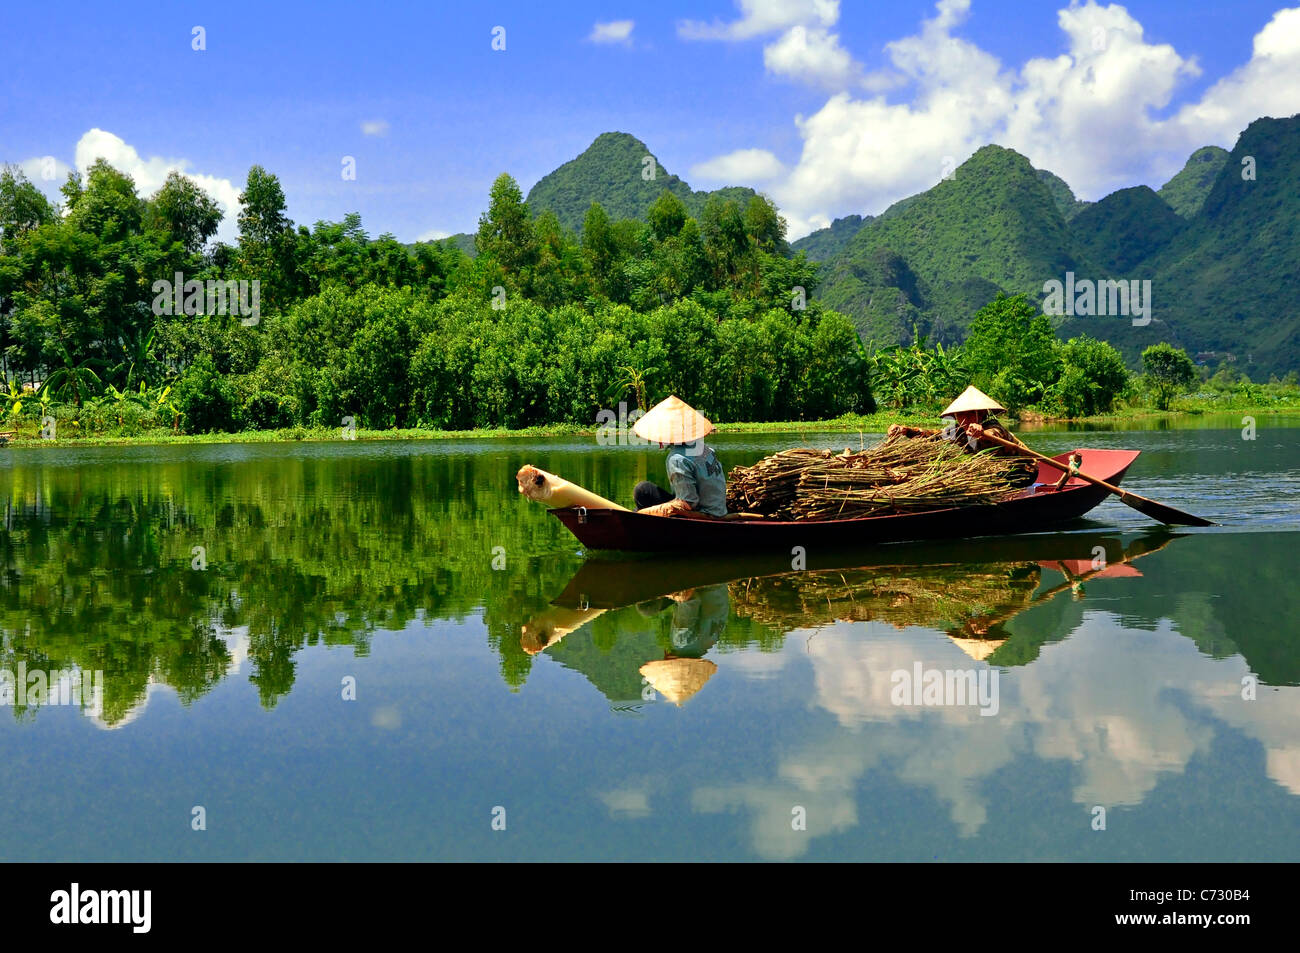 A photo of two boatwomen from Tam Coc, Vietnam bringing back firewood to the town. - Stock Image